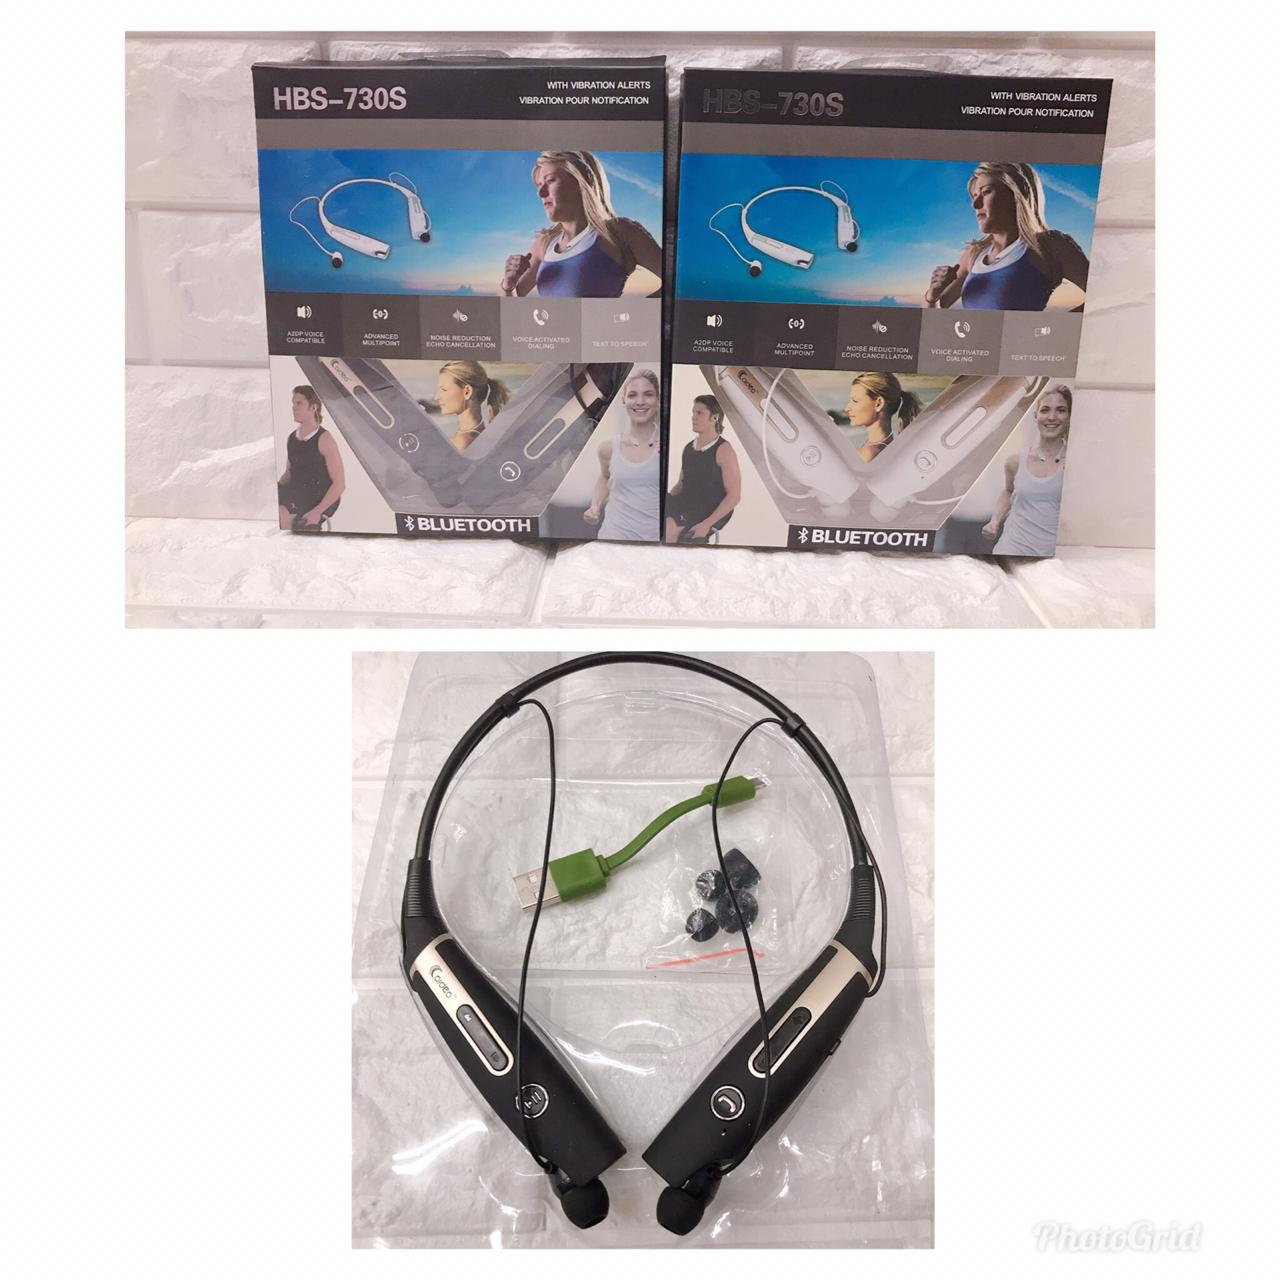 Handsfree Bluetooth HBS-730S